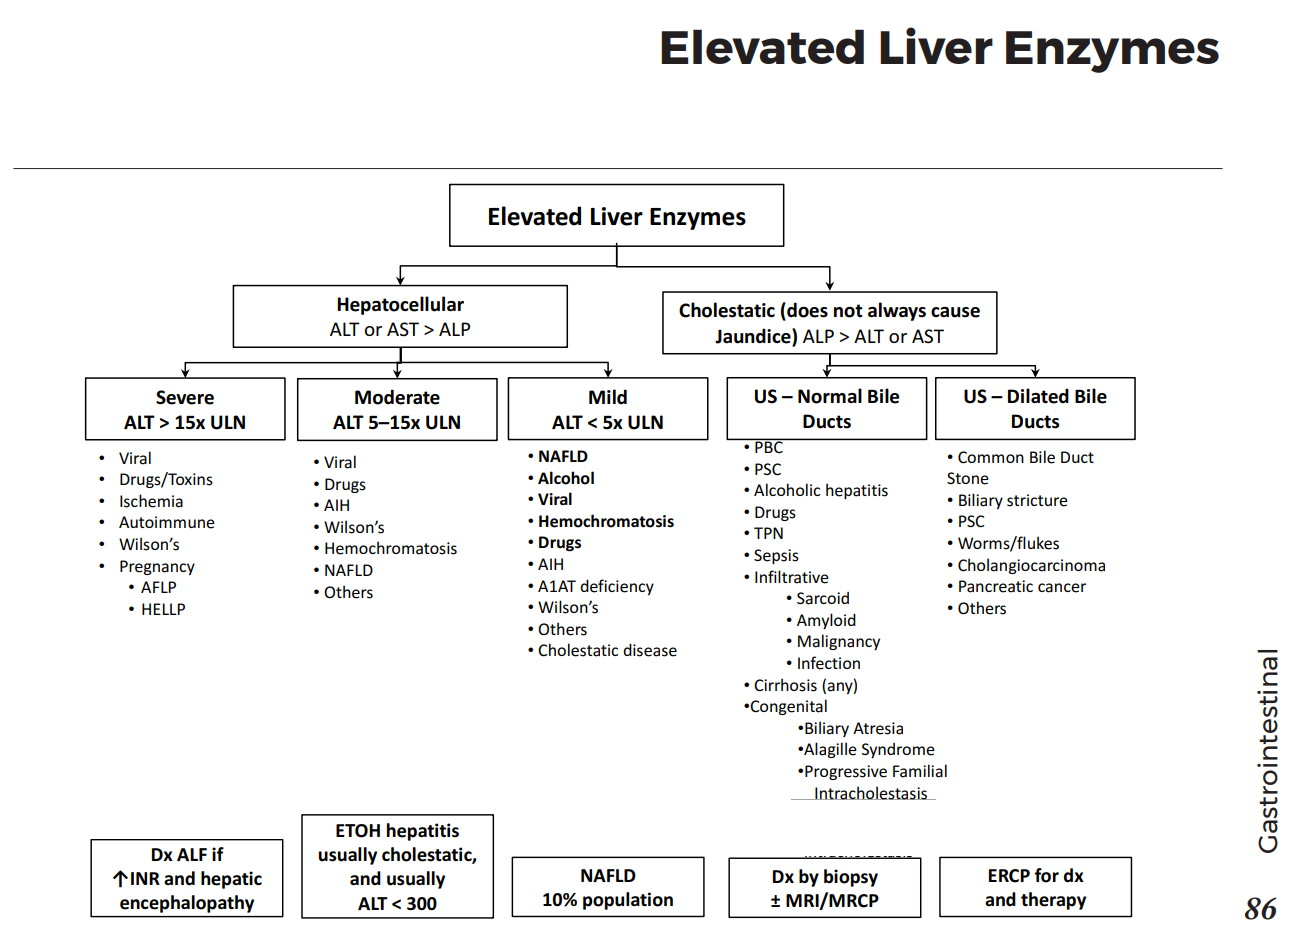 Elevated Liver Enzymes Differential Diagnosis Algorithm Severe Alt 15x Uln